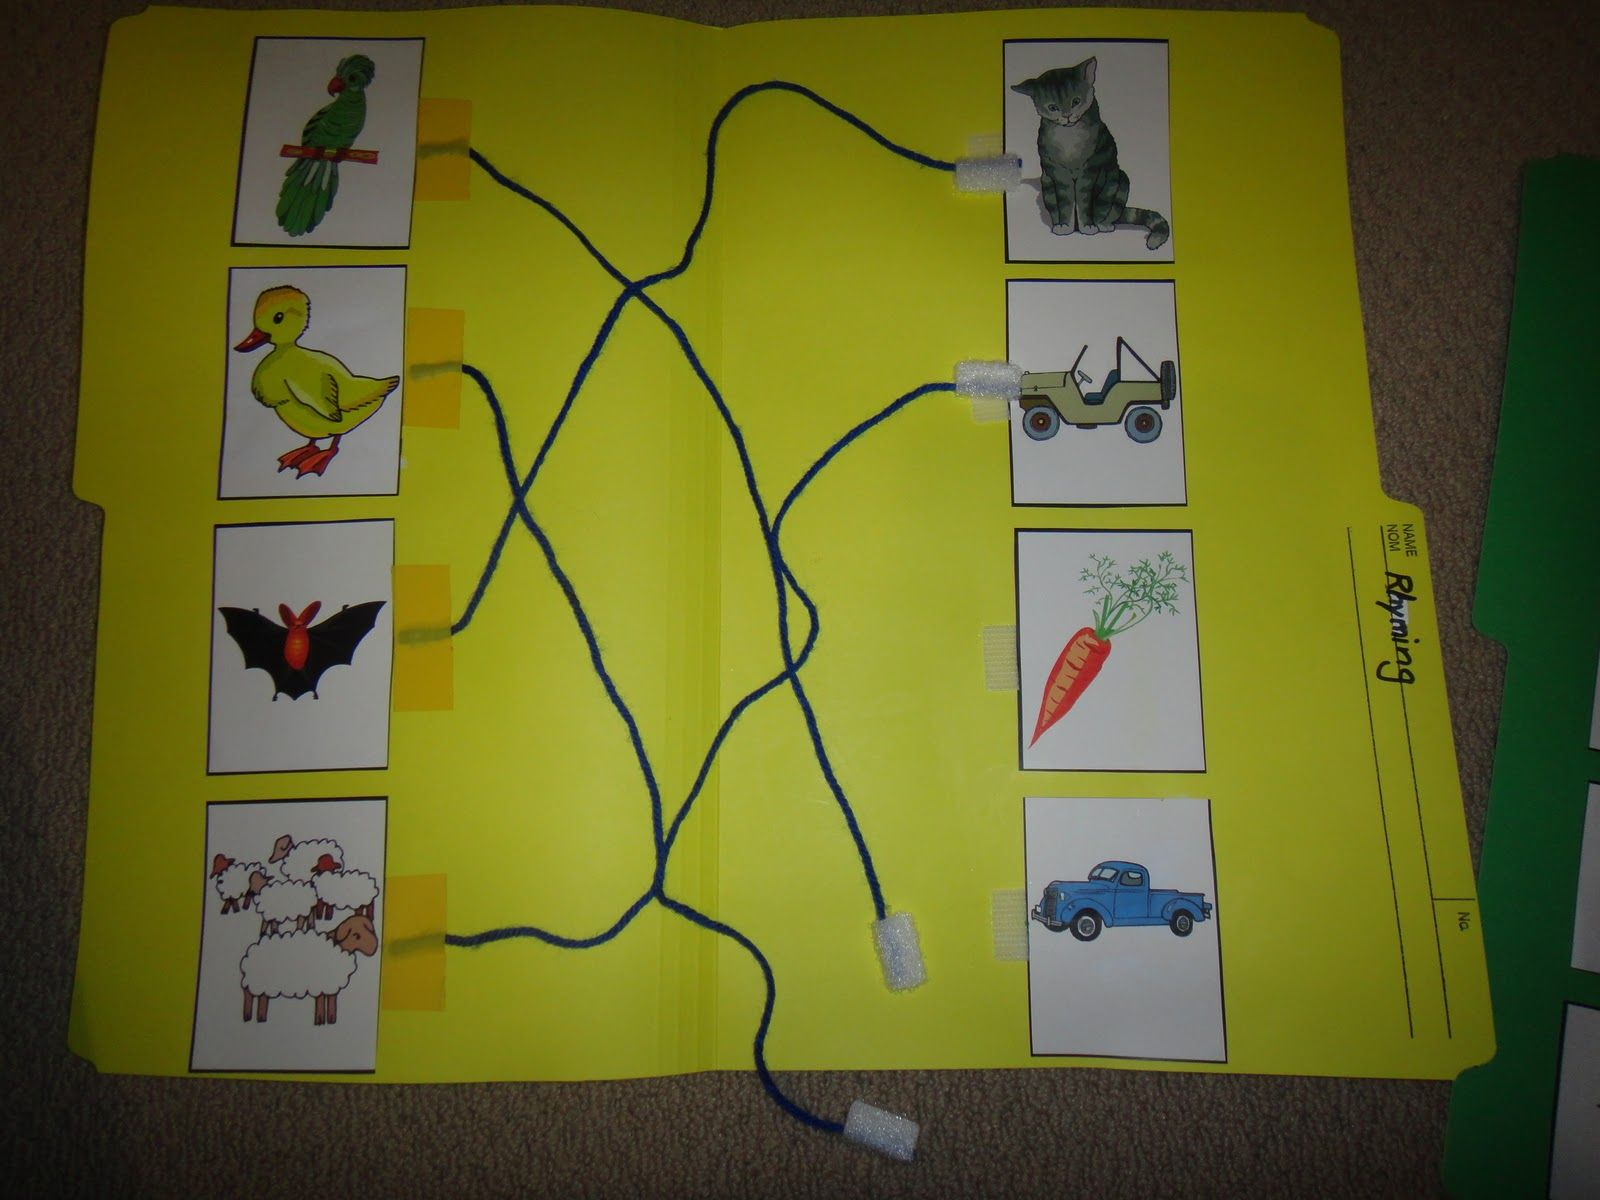 You Can Also Use A Simple Light Bulb Circuit To Make This